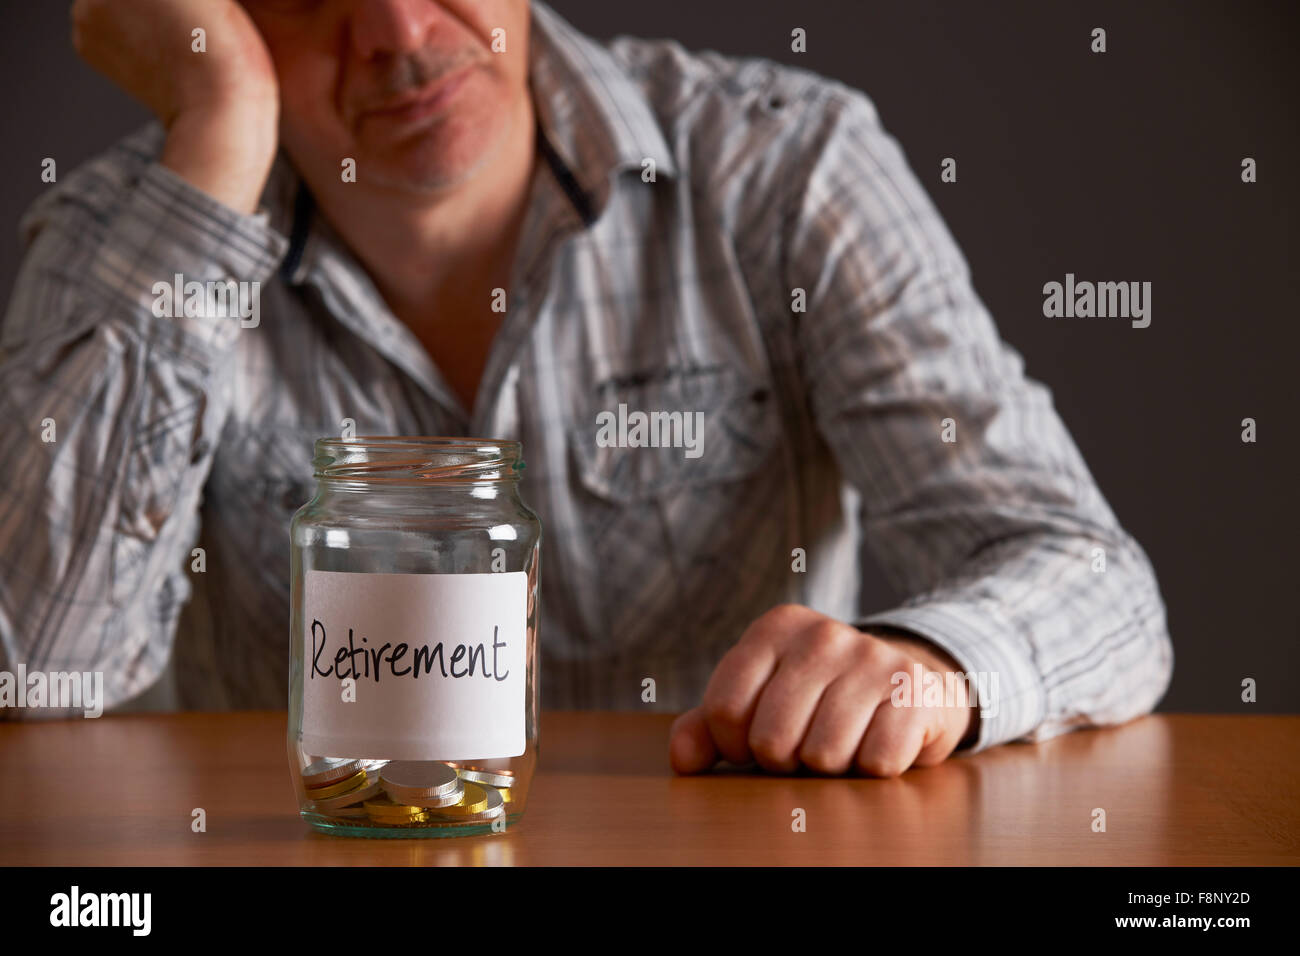 Depressed Man Looking At Empty Jar Labelled Retirement Stock Photo